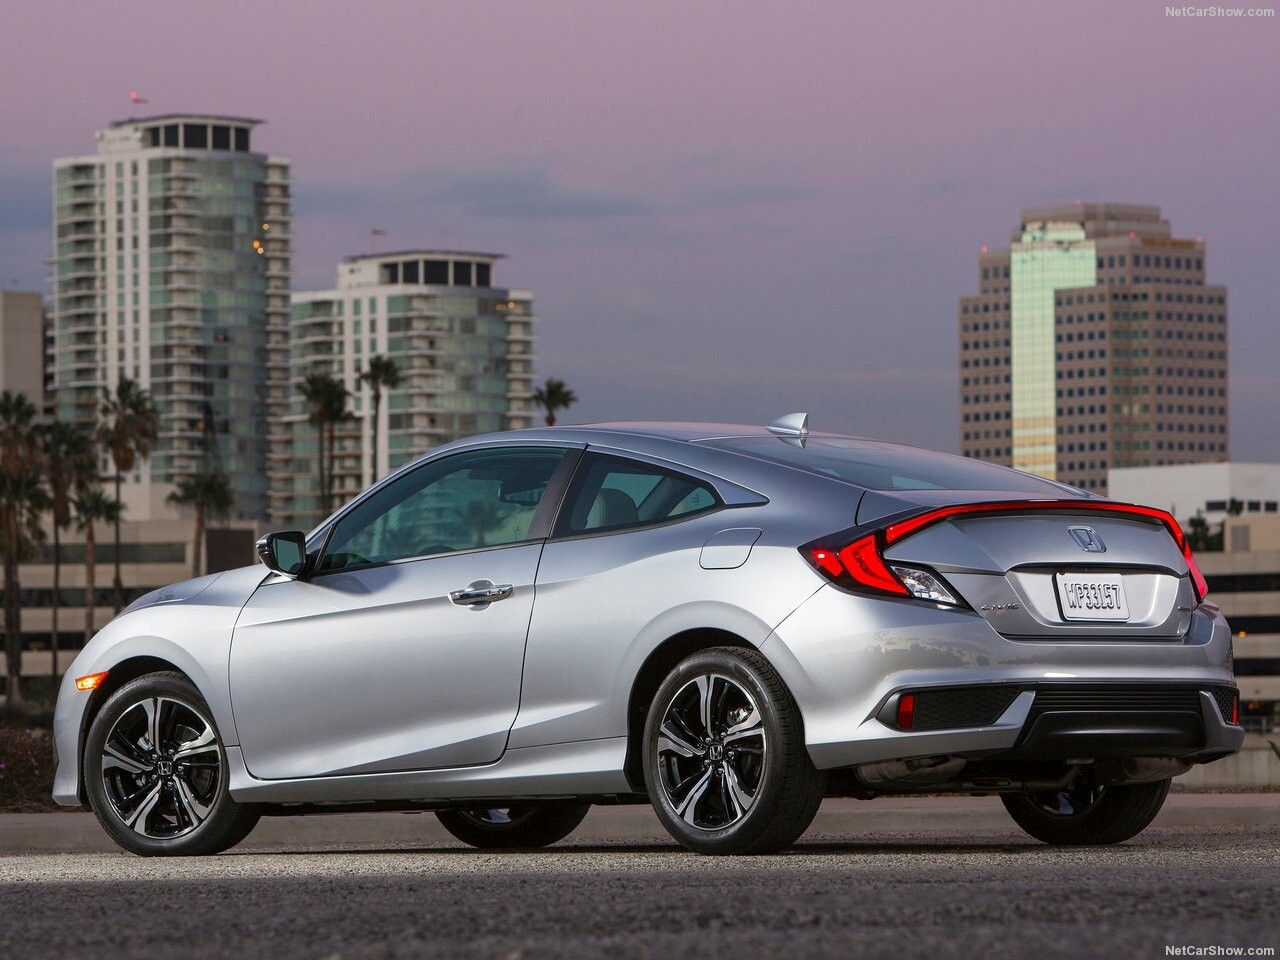 2016 Honda Civic coupe Honda civic, Honda civic si coupe